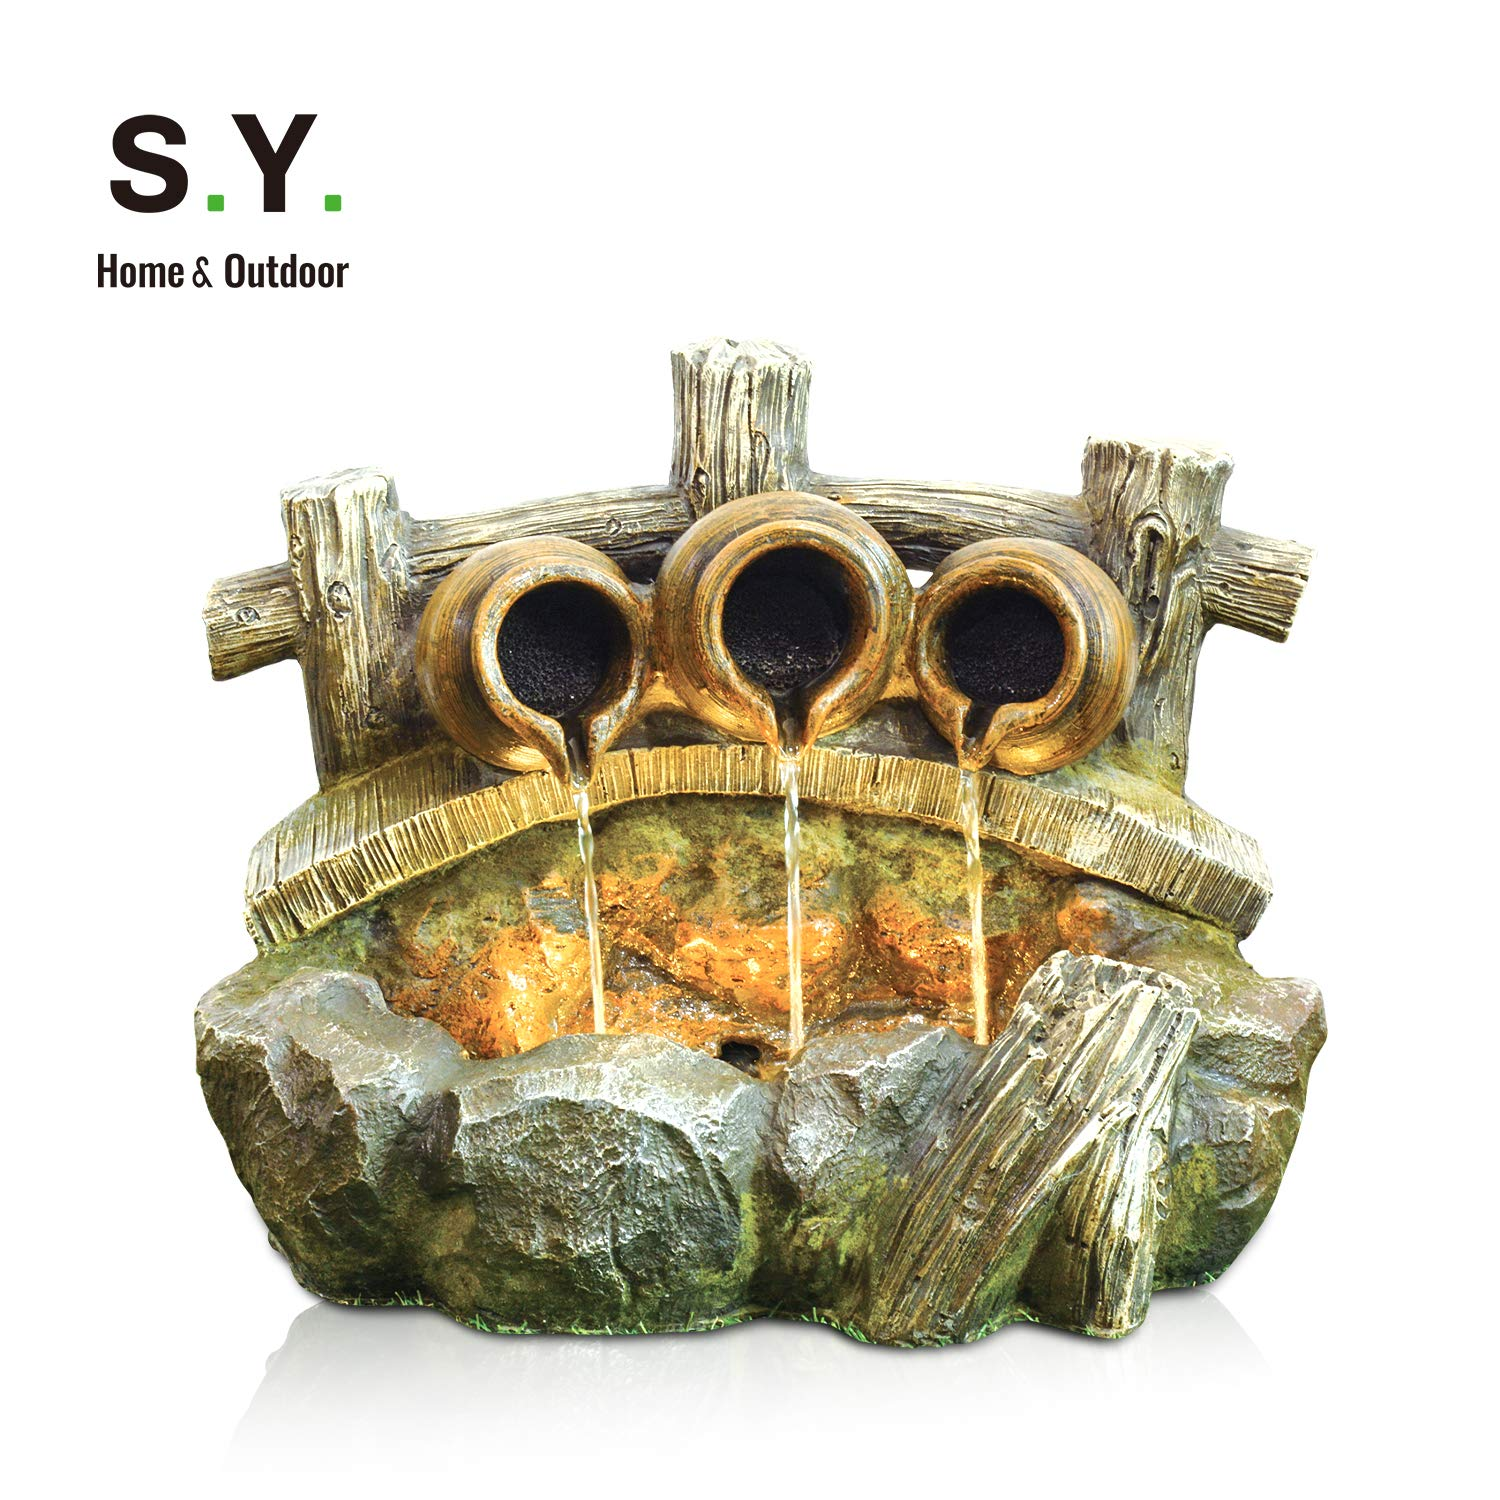 S.Y. Water Fountain Cascading Resin-Rock Tabletop Fountain, Indoor Oudoor Waterfall Feature with LED Lights & Pump Decorative Fountain for Stress Relief, 21 x 17 x 15 inches